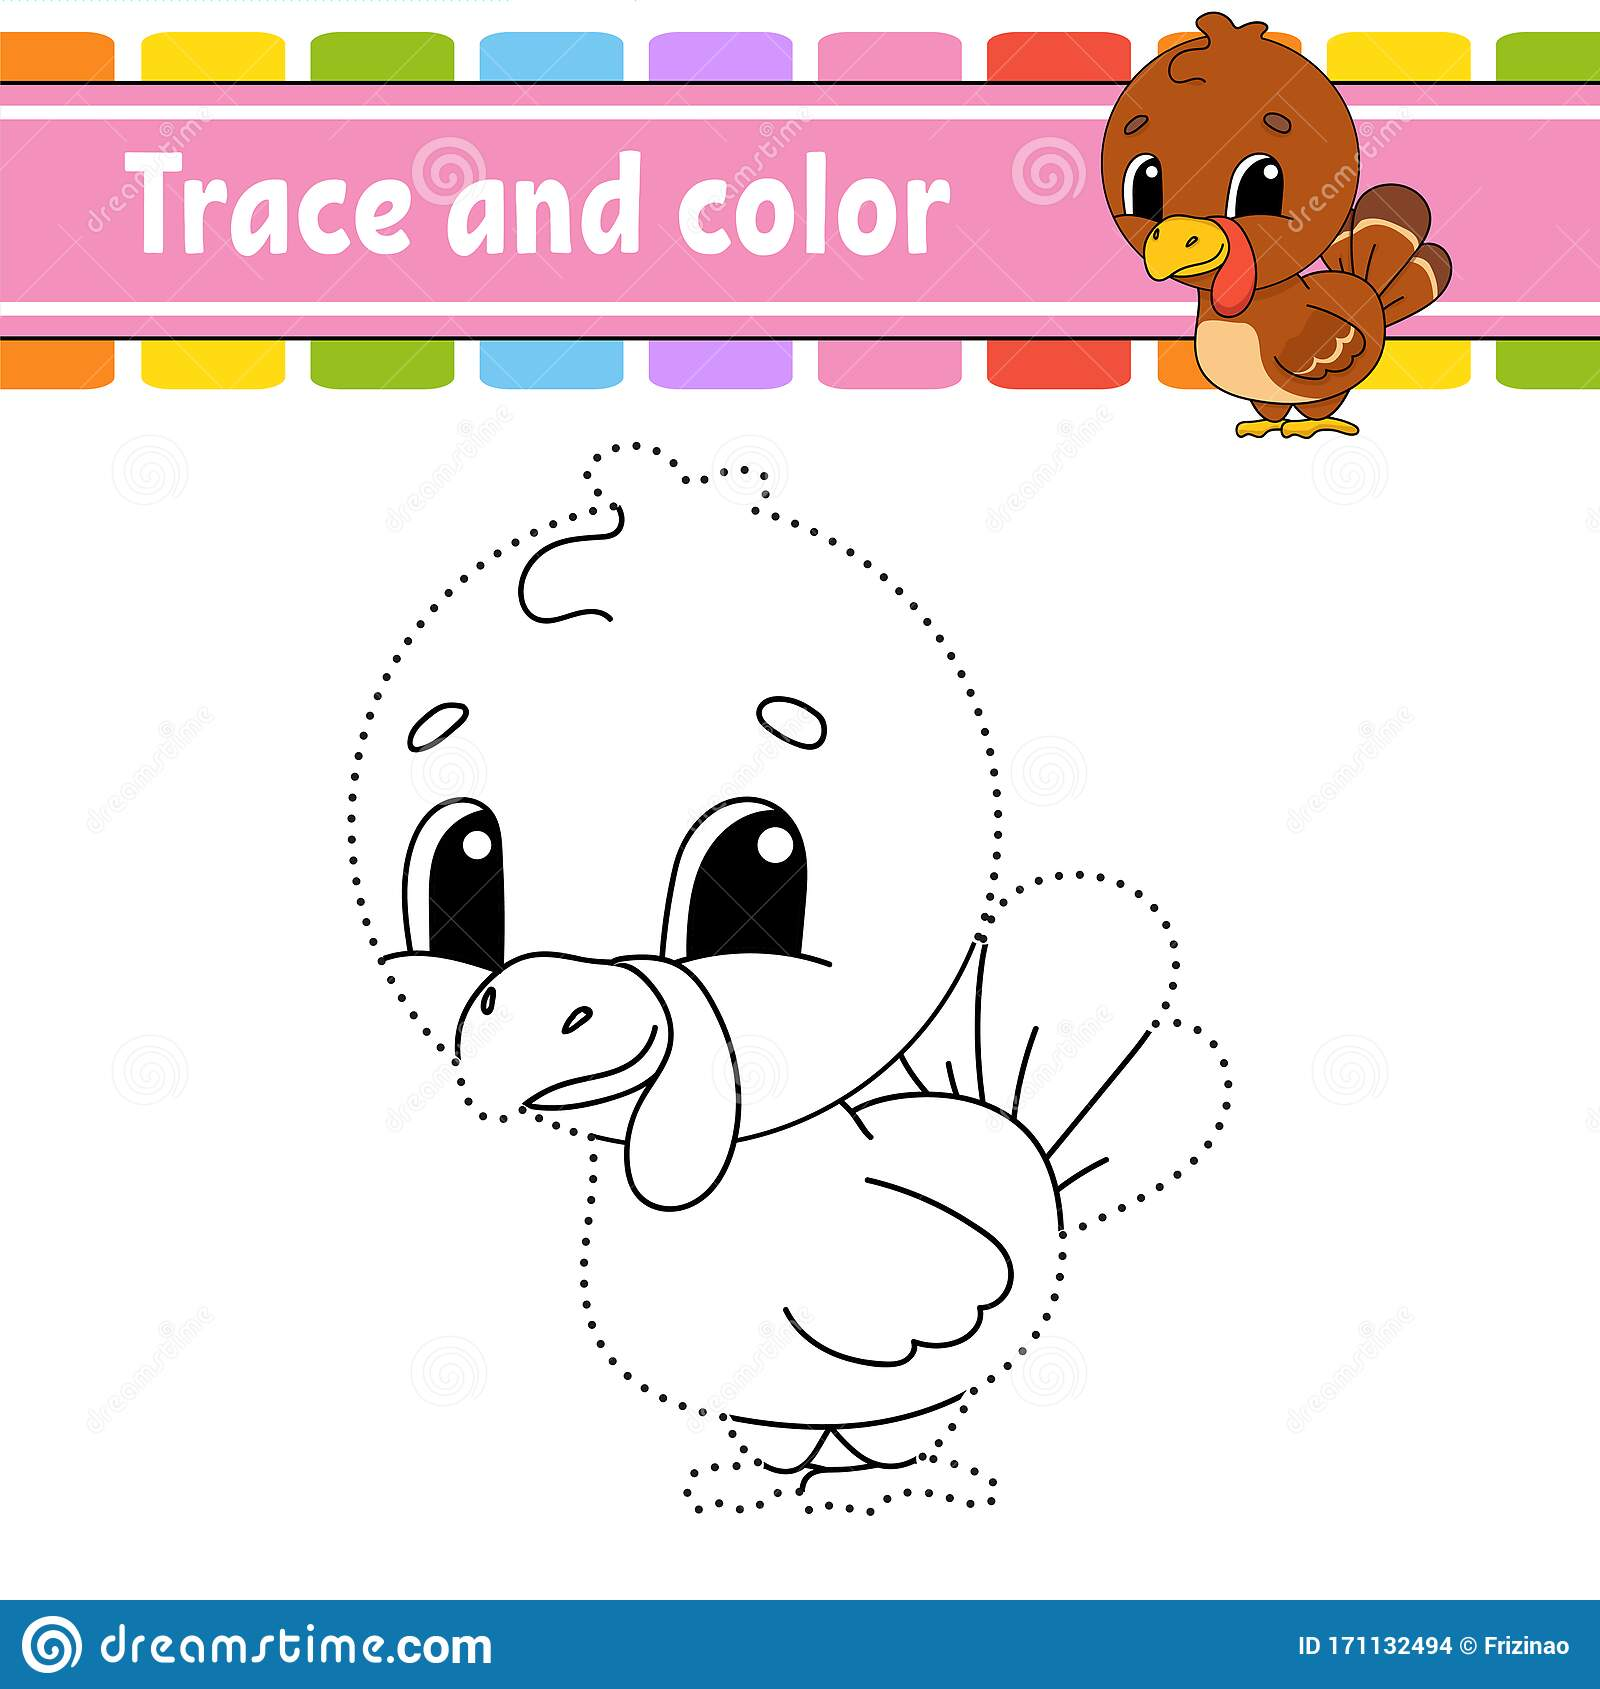 Trace And Color Turkey Bird Coloring Page For Kids